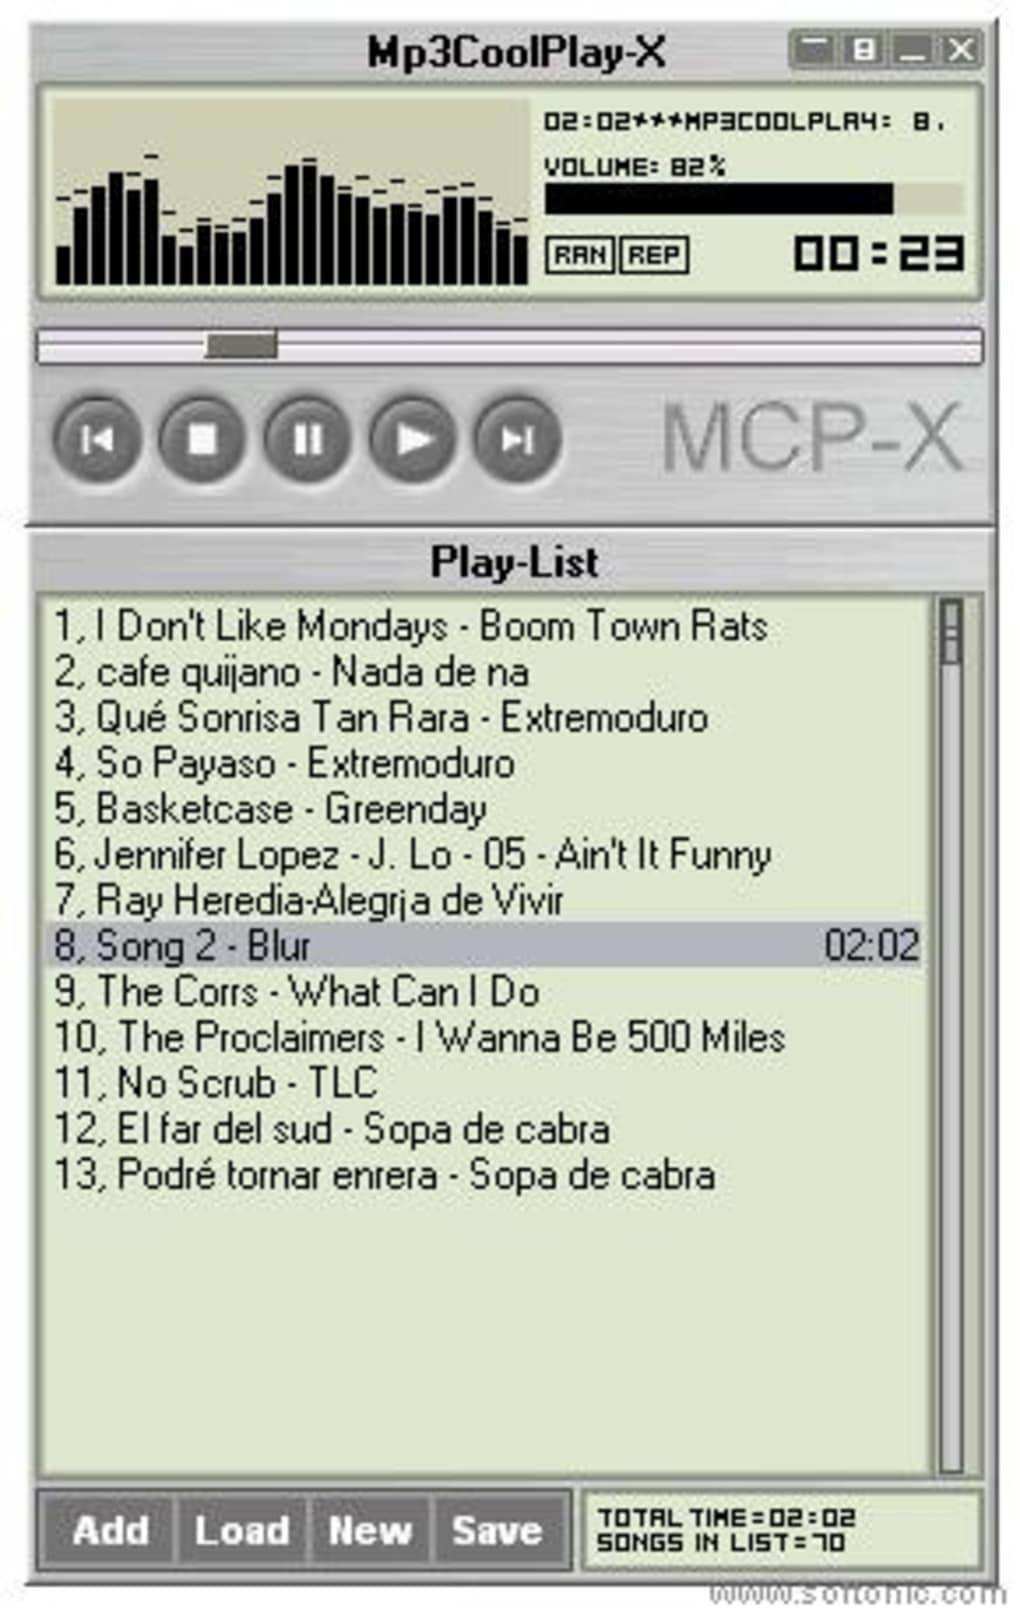 Mp3CoolPlay-X - Download